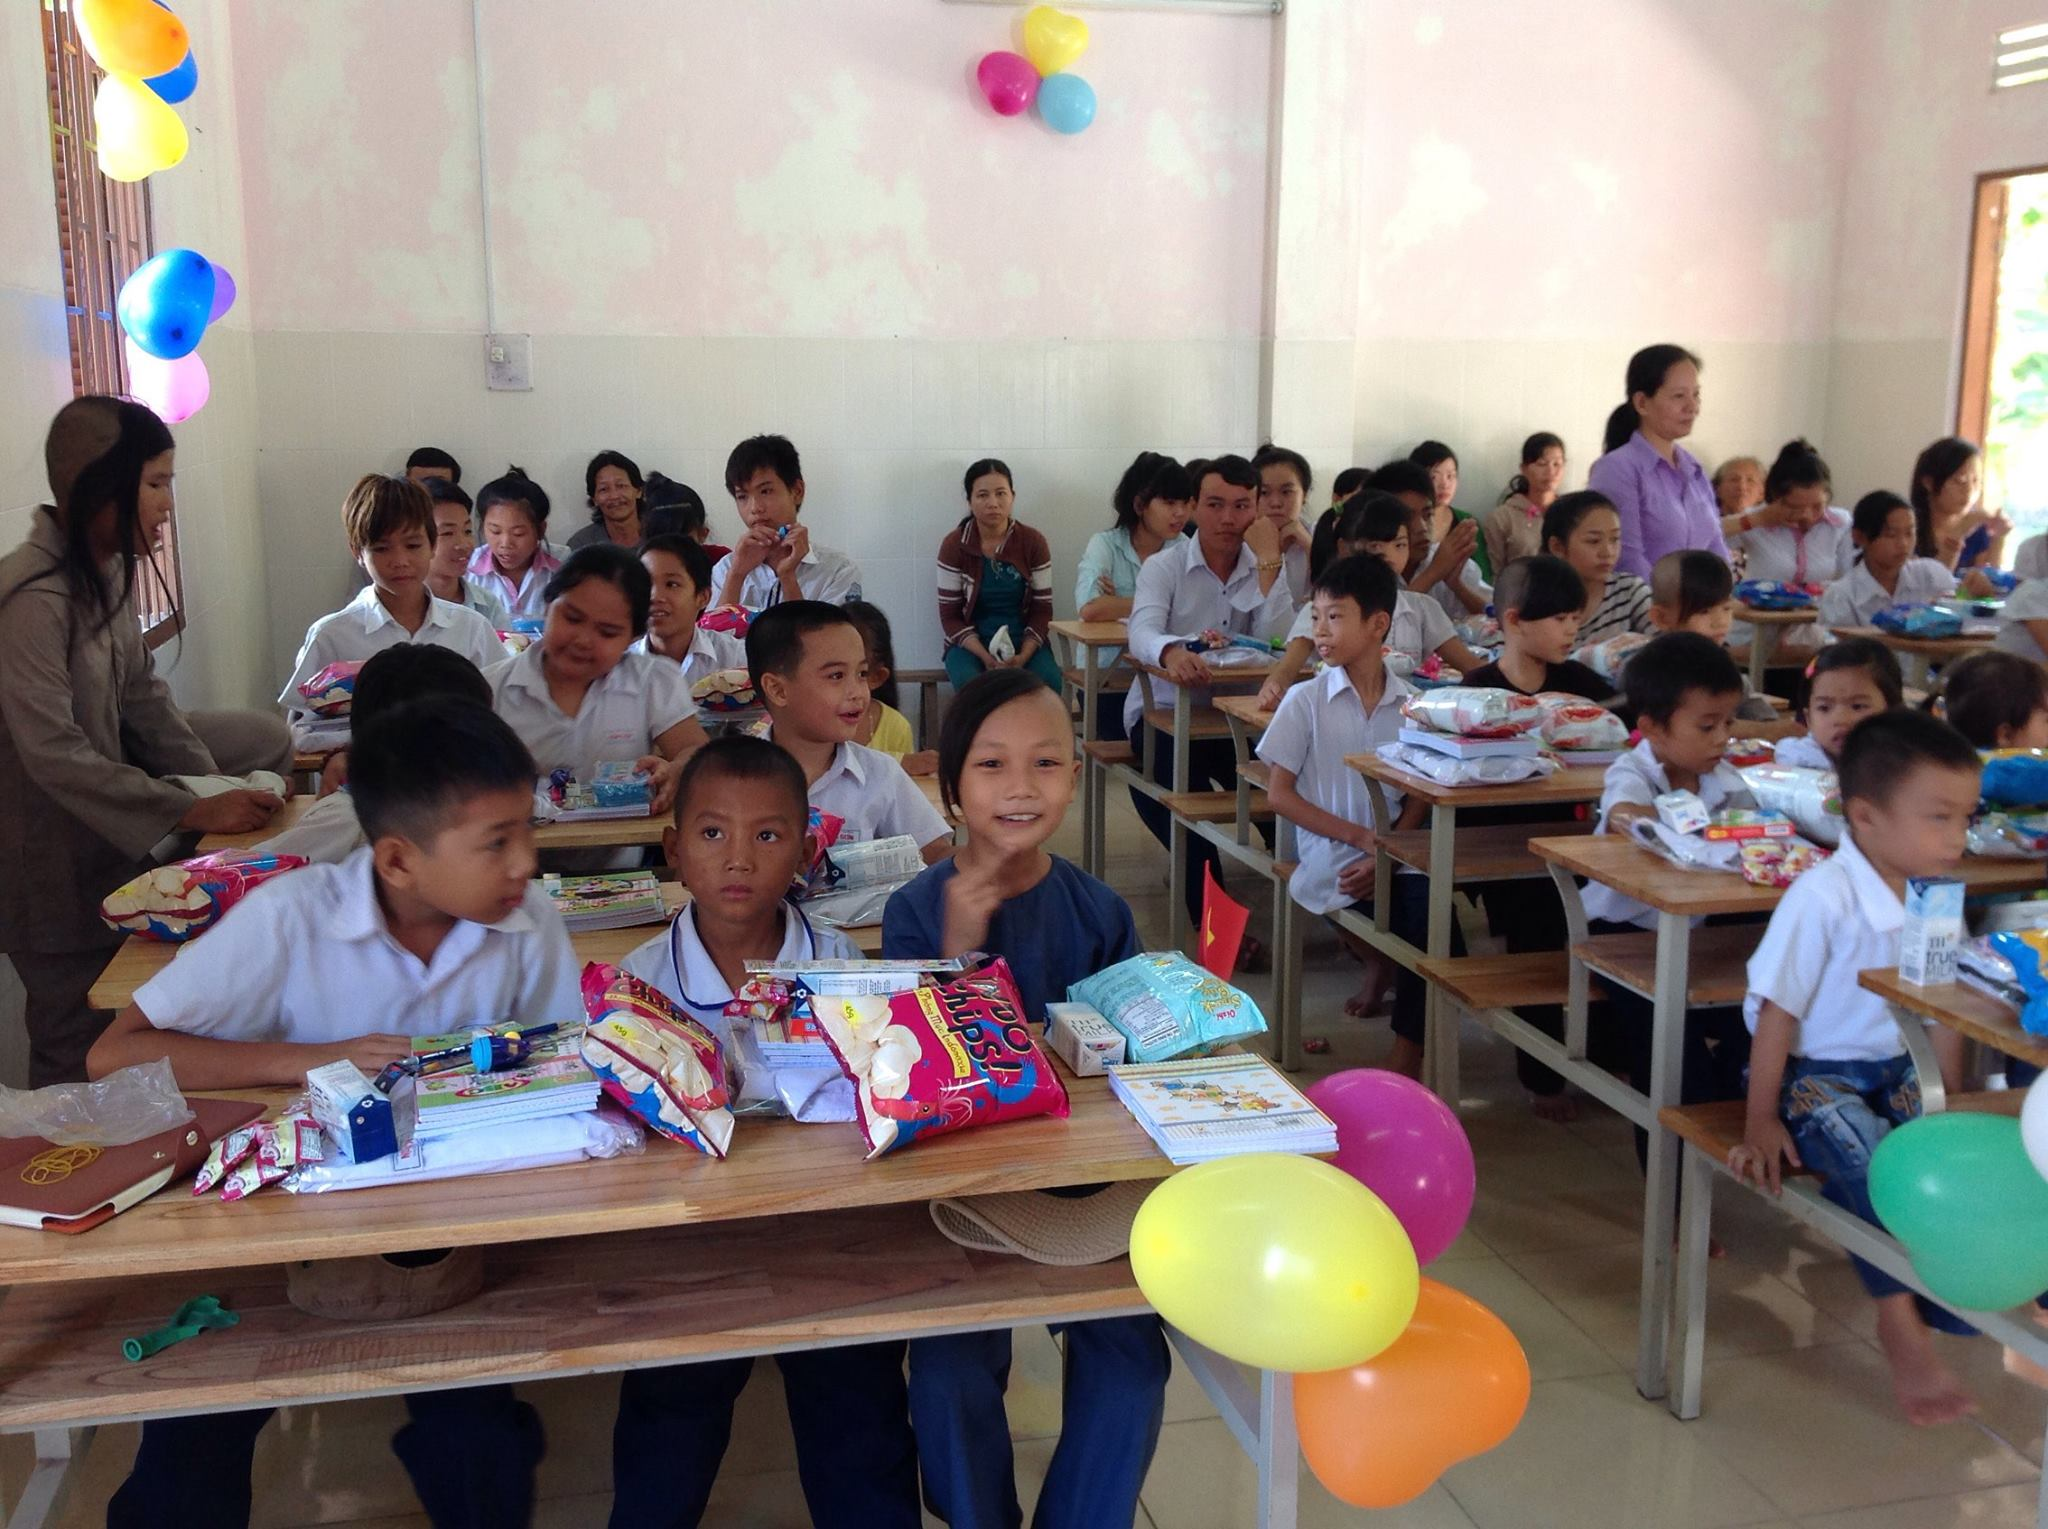 essay on charity and charity schools Charity: high schools ap english charity many people donate to charity in their everyday lives, while others do it as an assignment individuals even give to charity just to receive money, gifts, or bonuses in return.